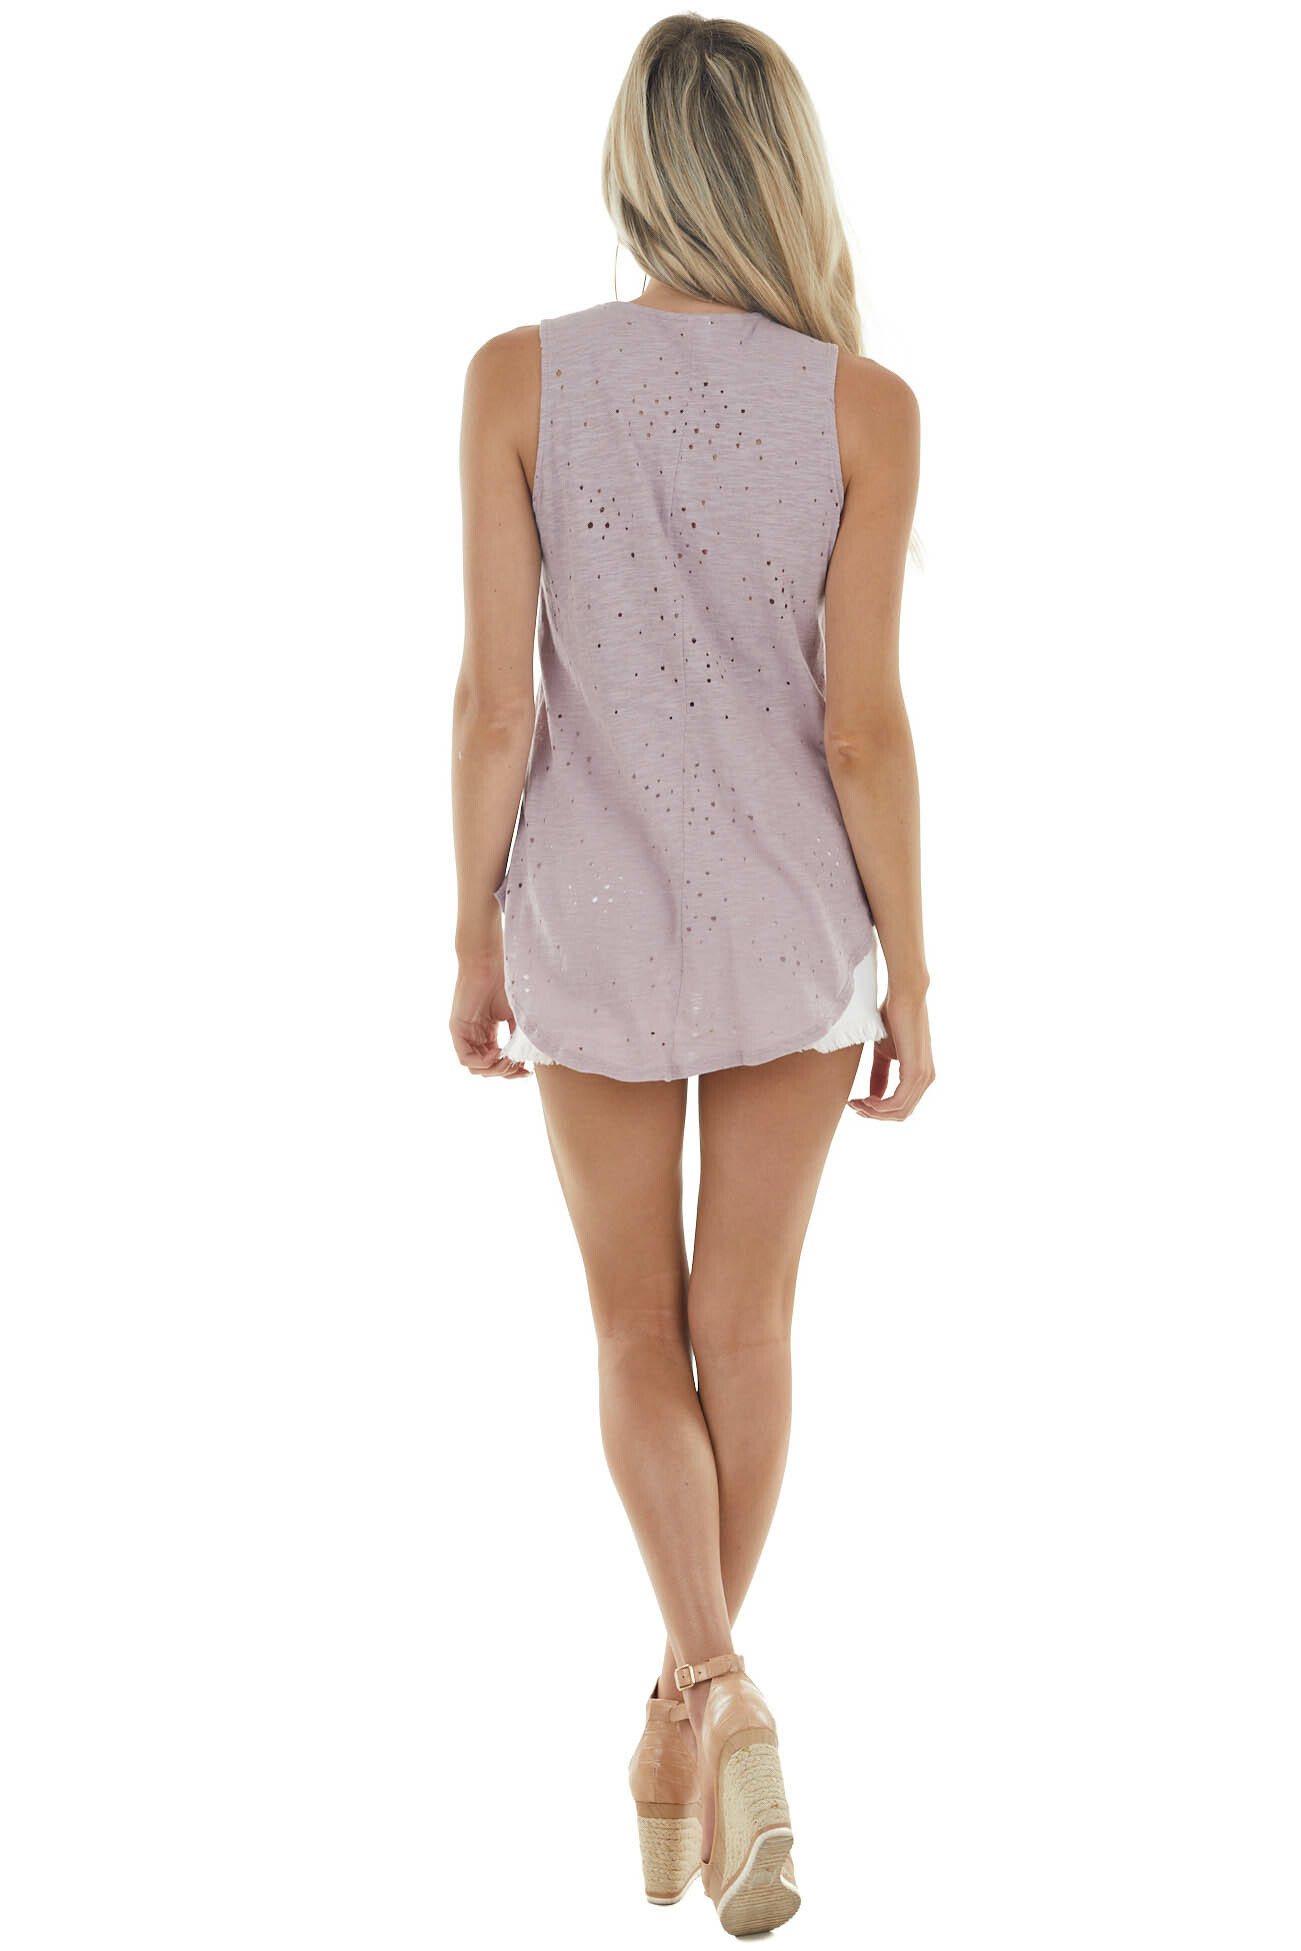 Mauve Sleeveless Top with Front Tie and Distressed Holes